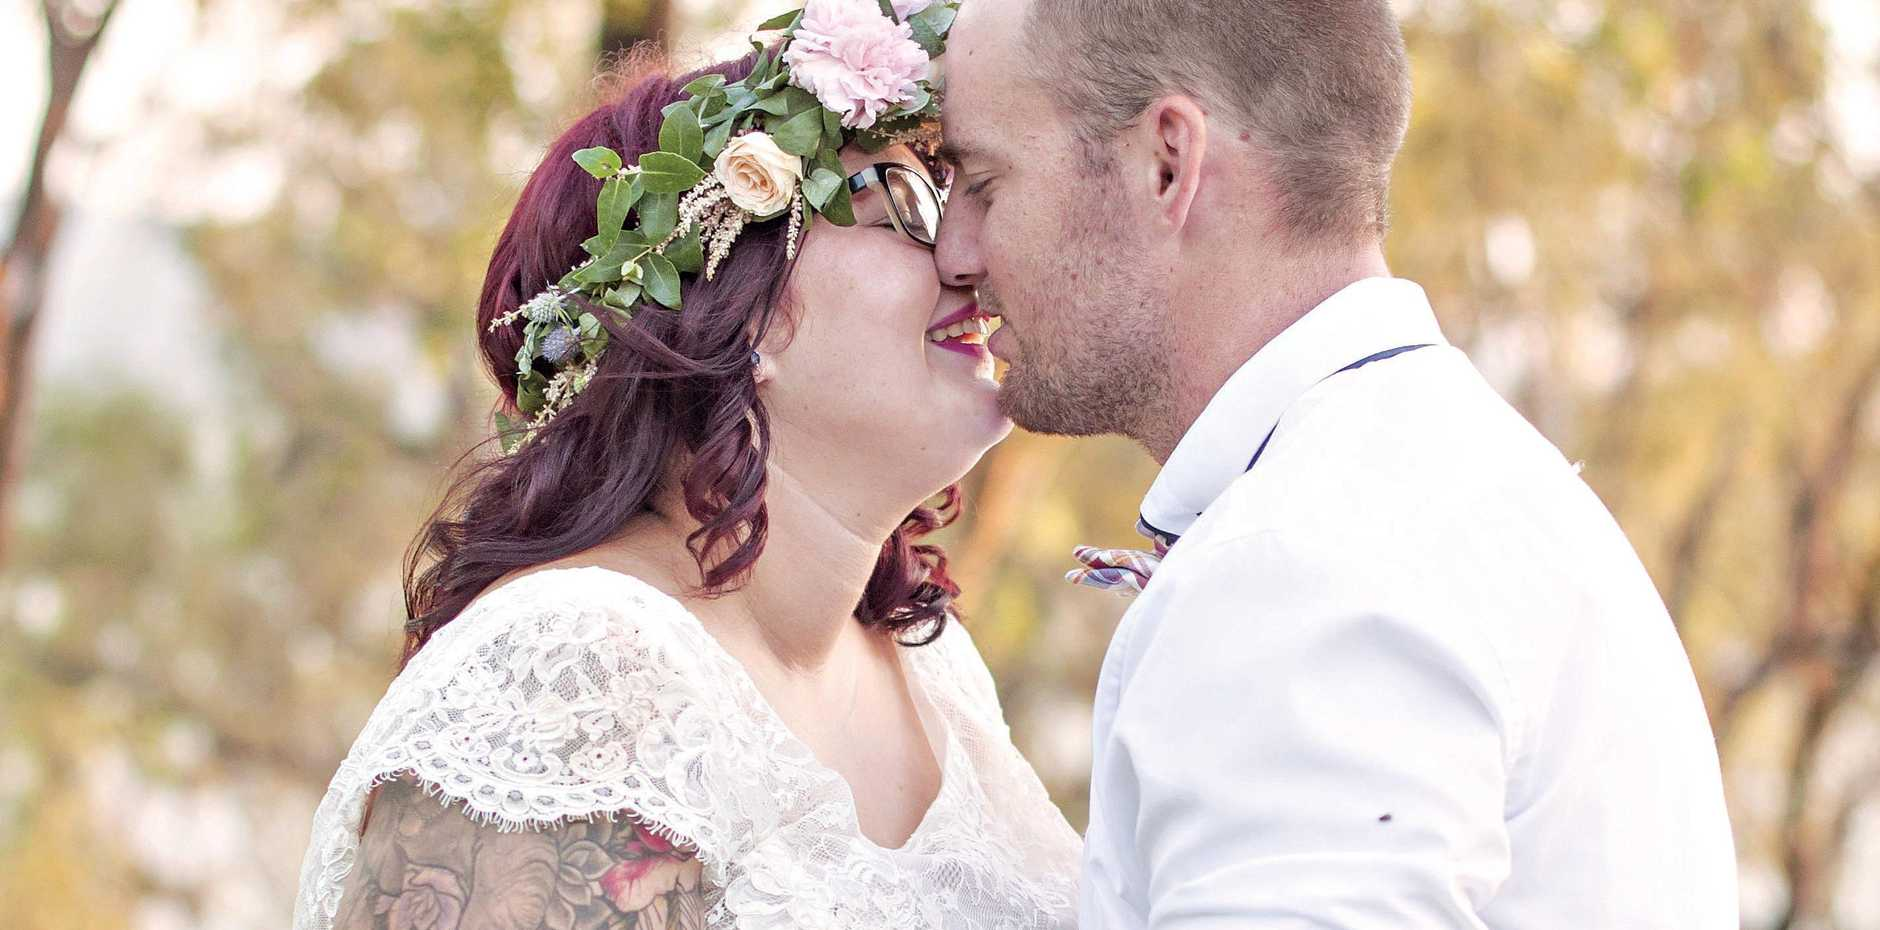 Tia and Jamie Cunninghame were married on January 14 2017 at their family's home in Benaraby, 24km south of Gladstone, central Queensland.